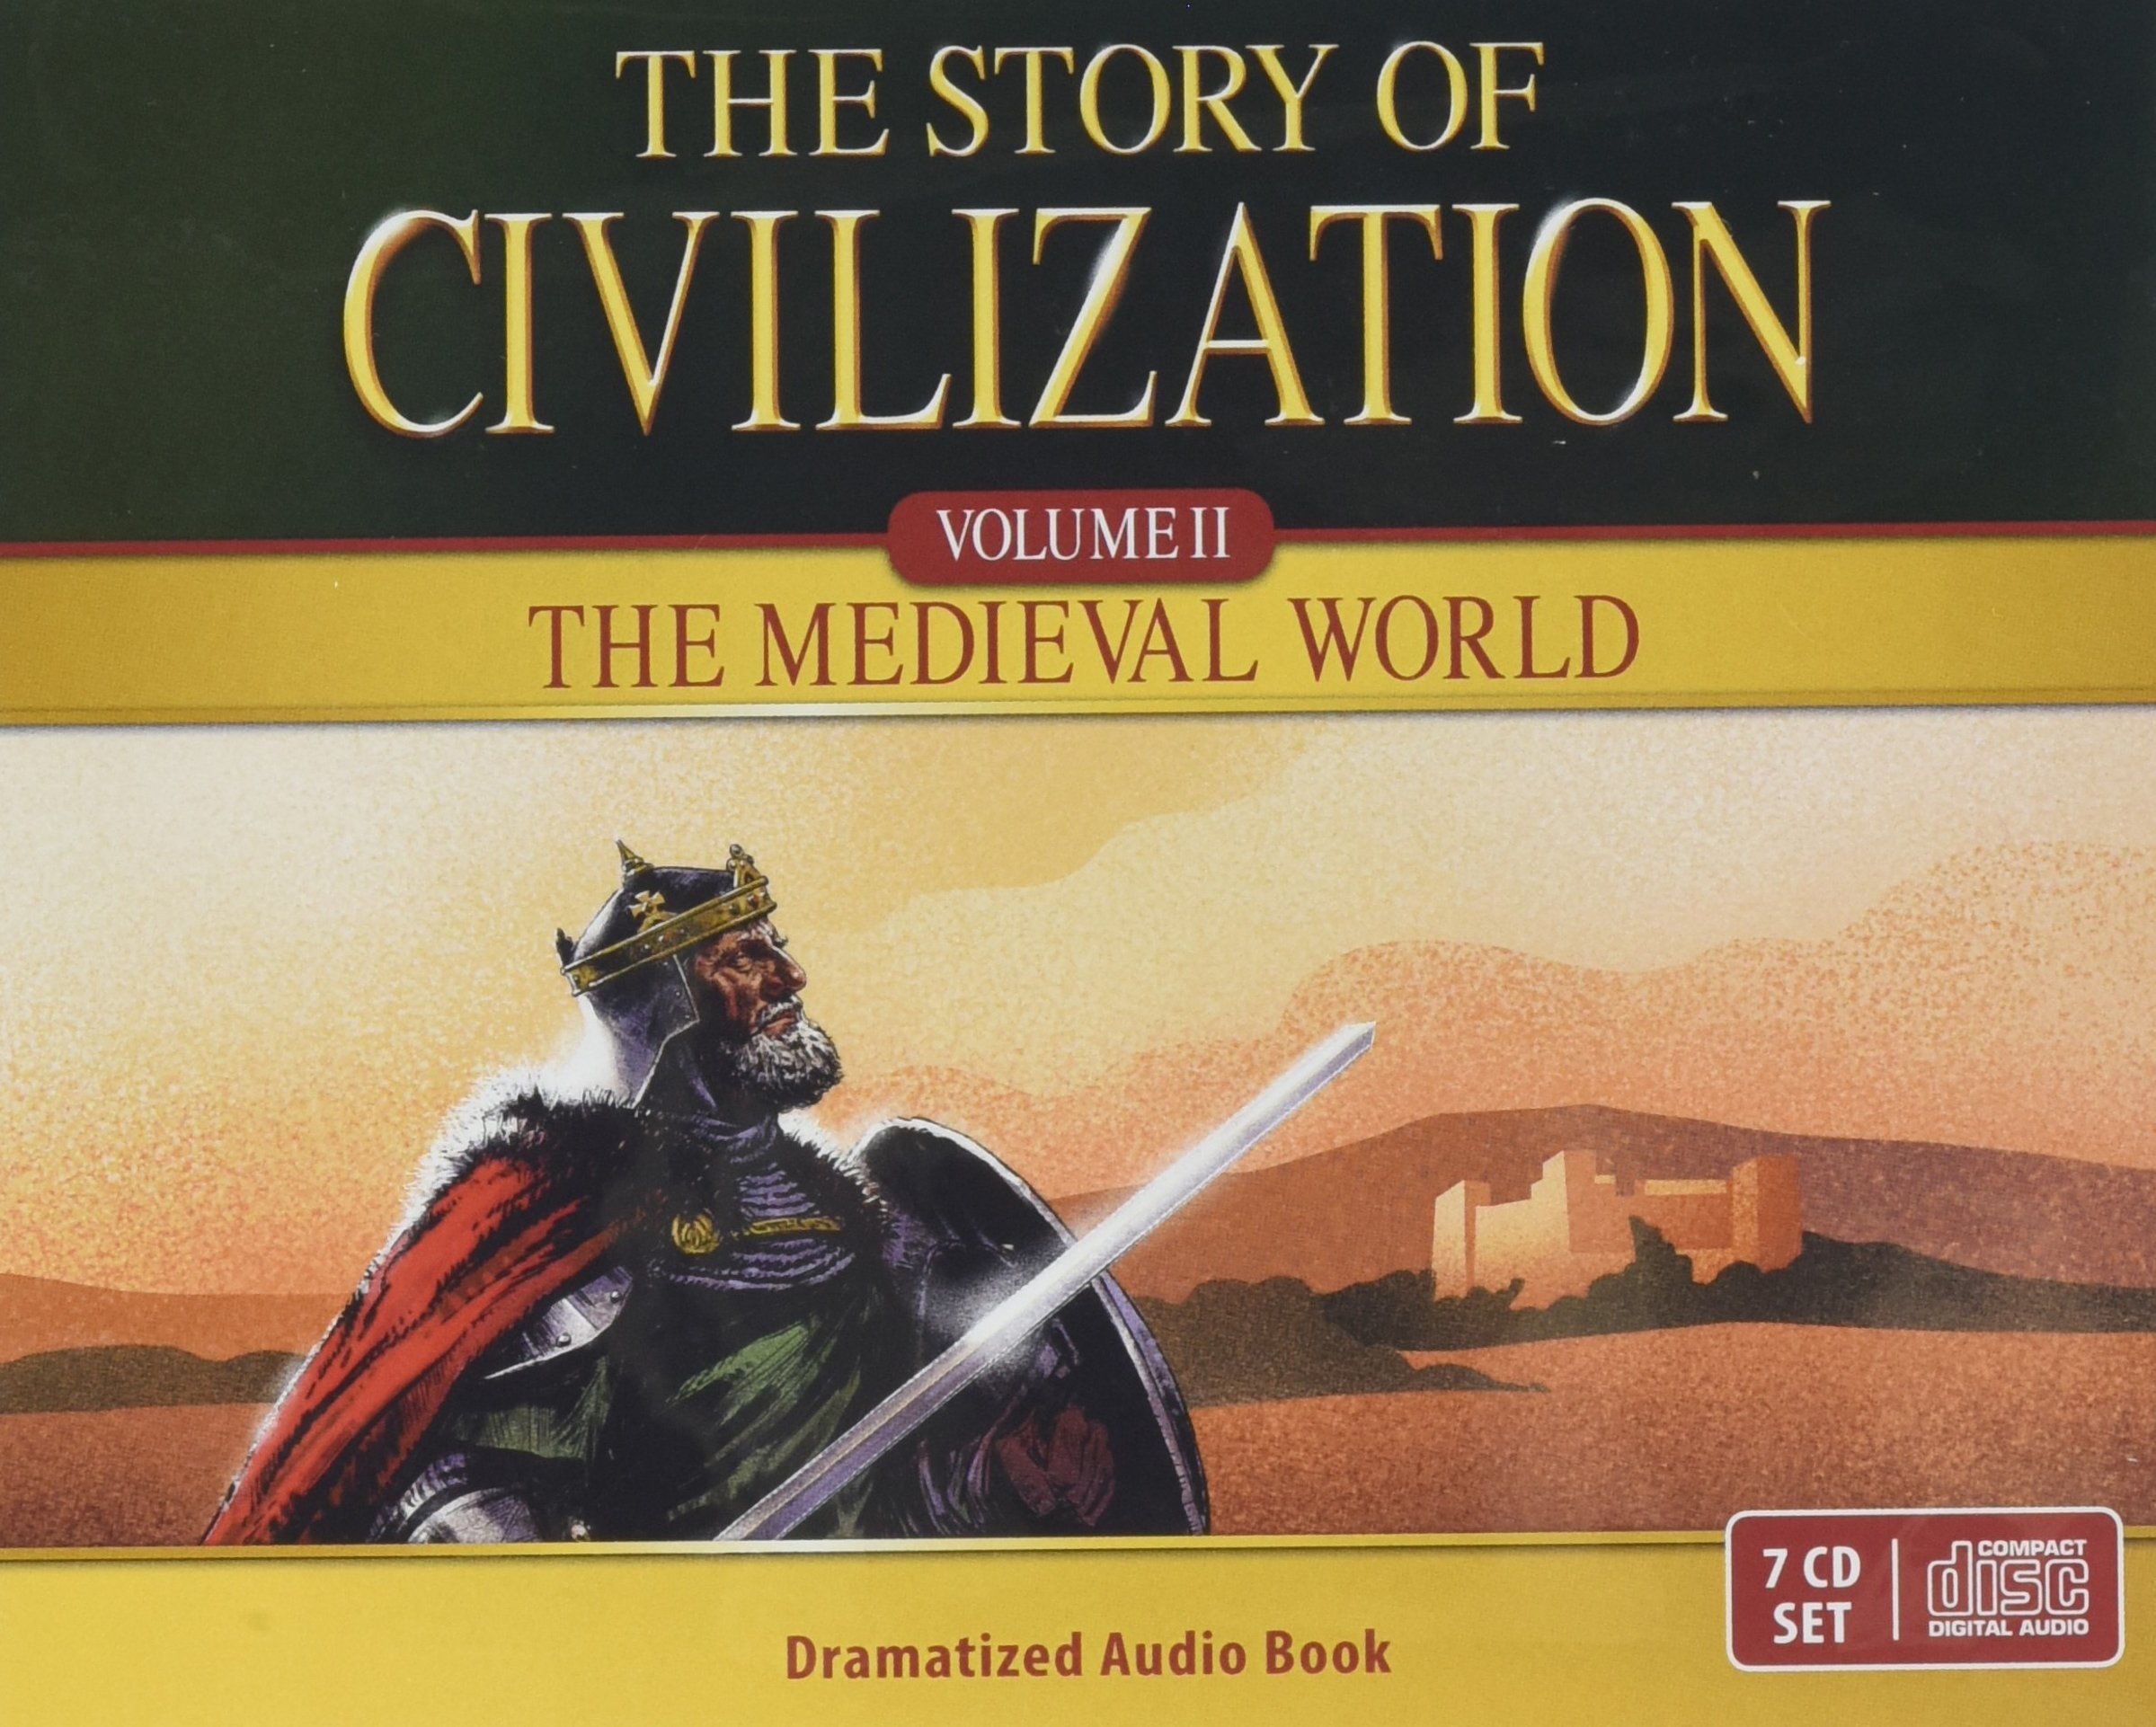 Download The Story of Civilization: VOLUME II - The Medieval World Audio Drama ebook